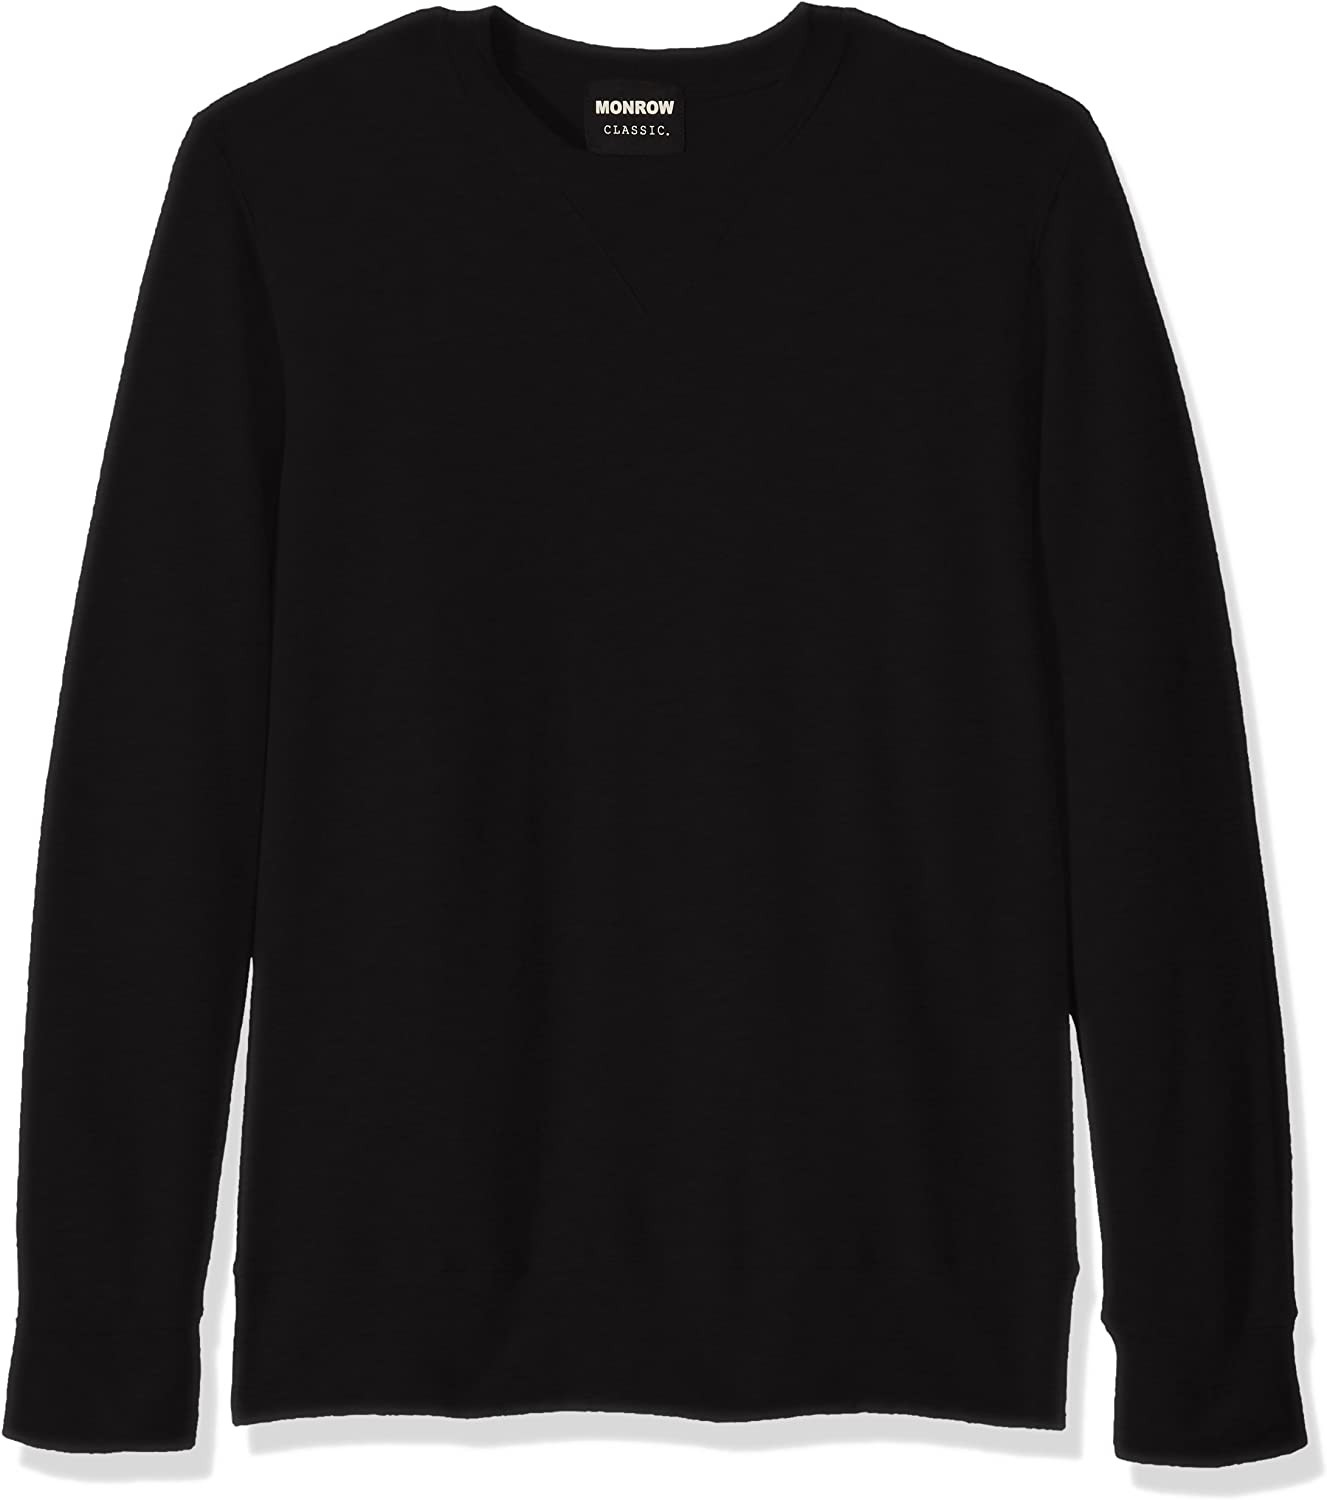 Monrow Outlet ☆ Free Shipping Men's Supersoft Neck Max 70% OFF Sweatshirt Crew